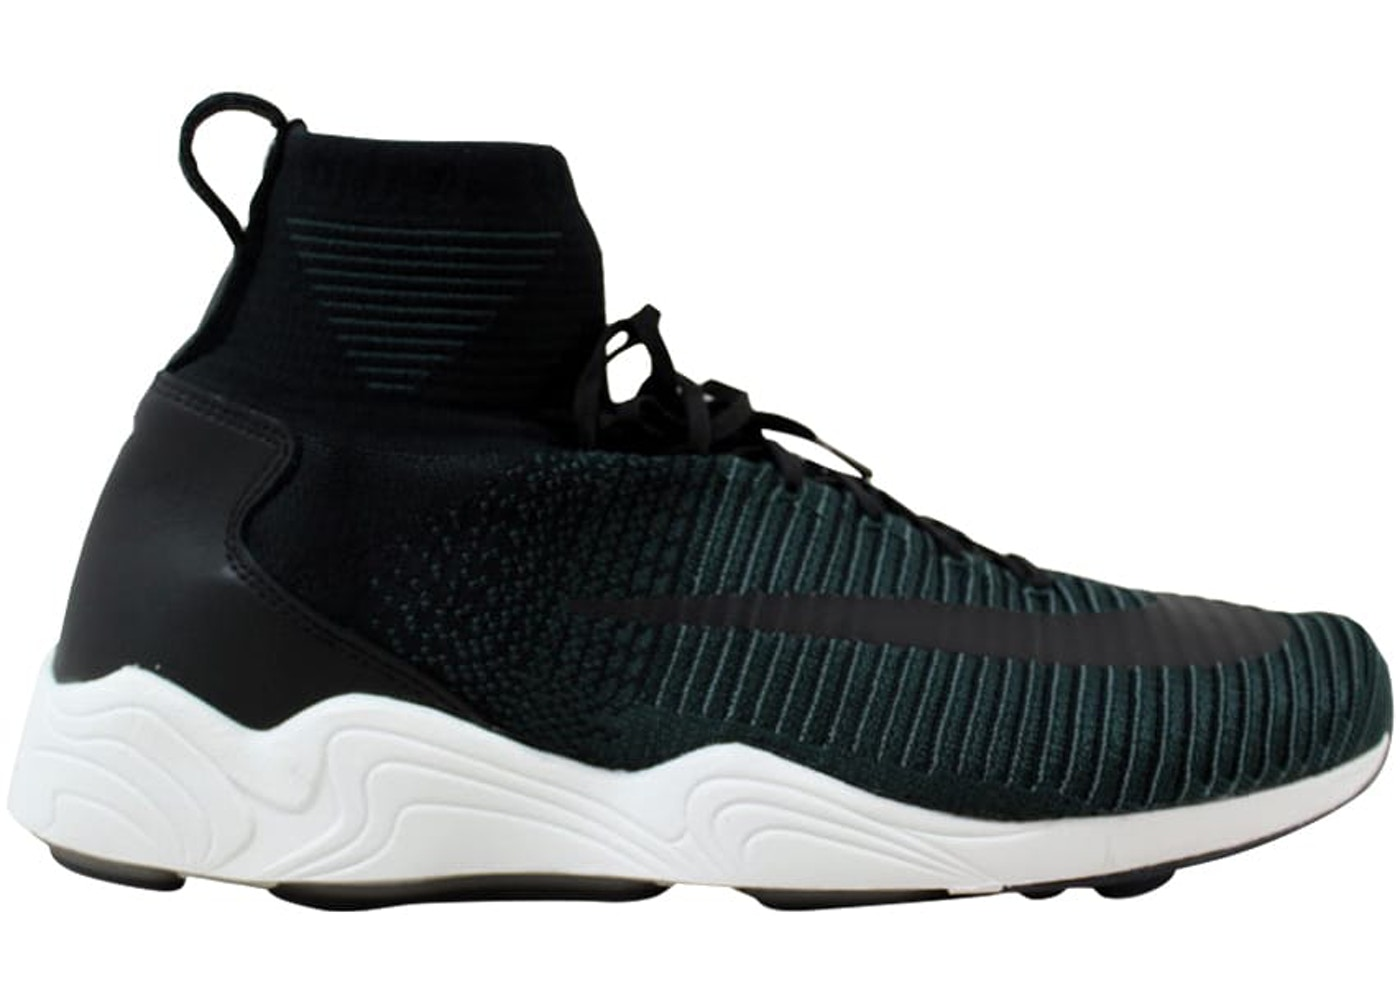 f4e3ee3a36fc2 Nike Other Shoes - Volatility